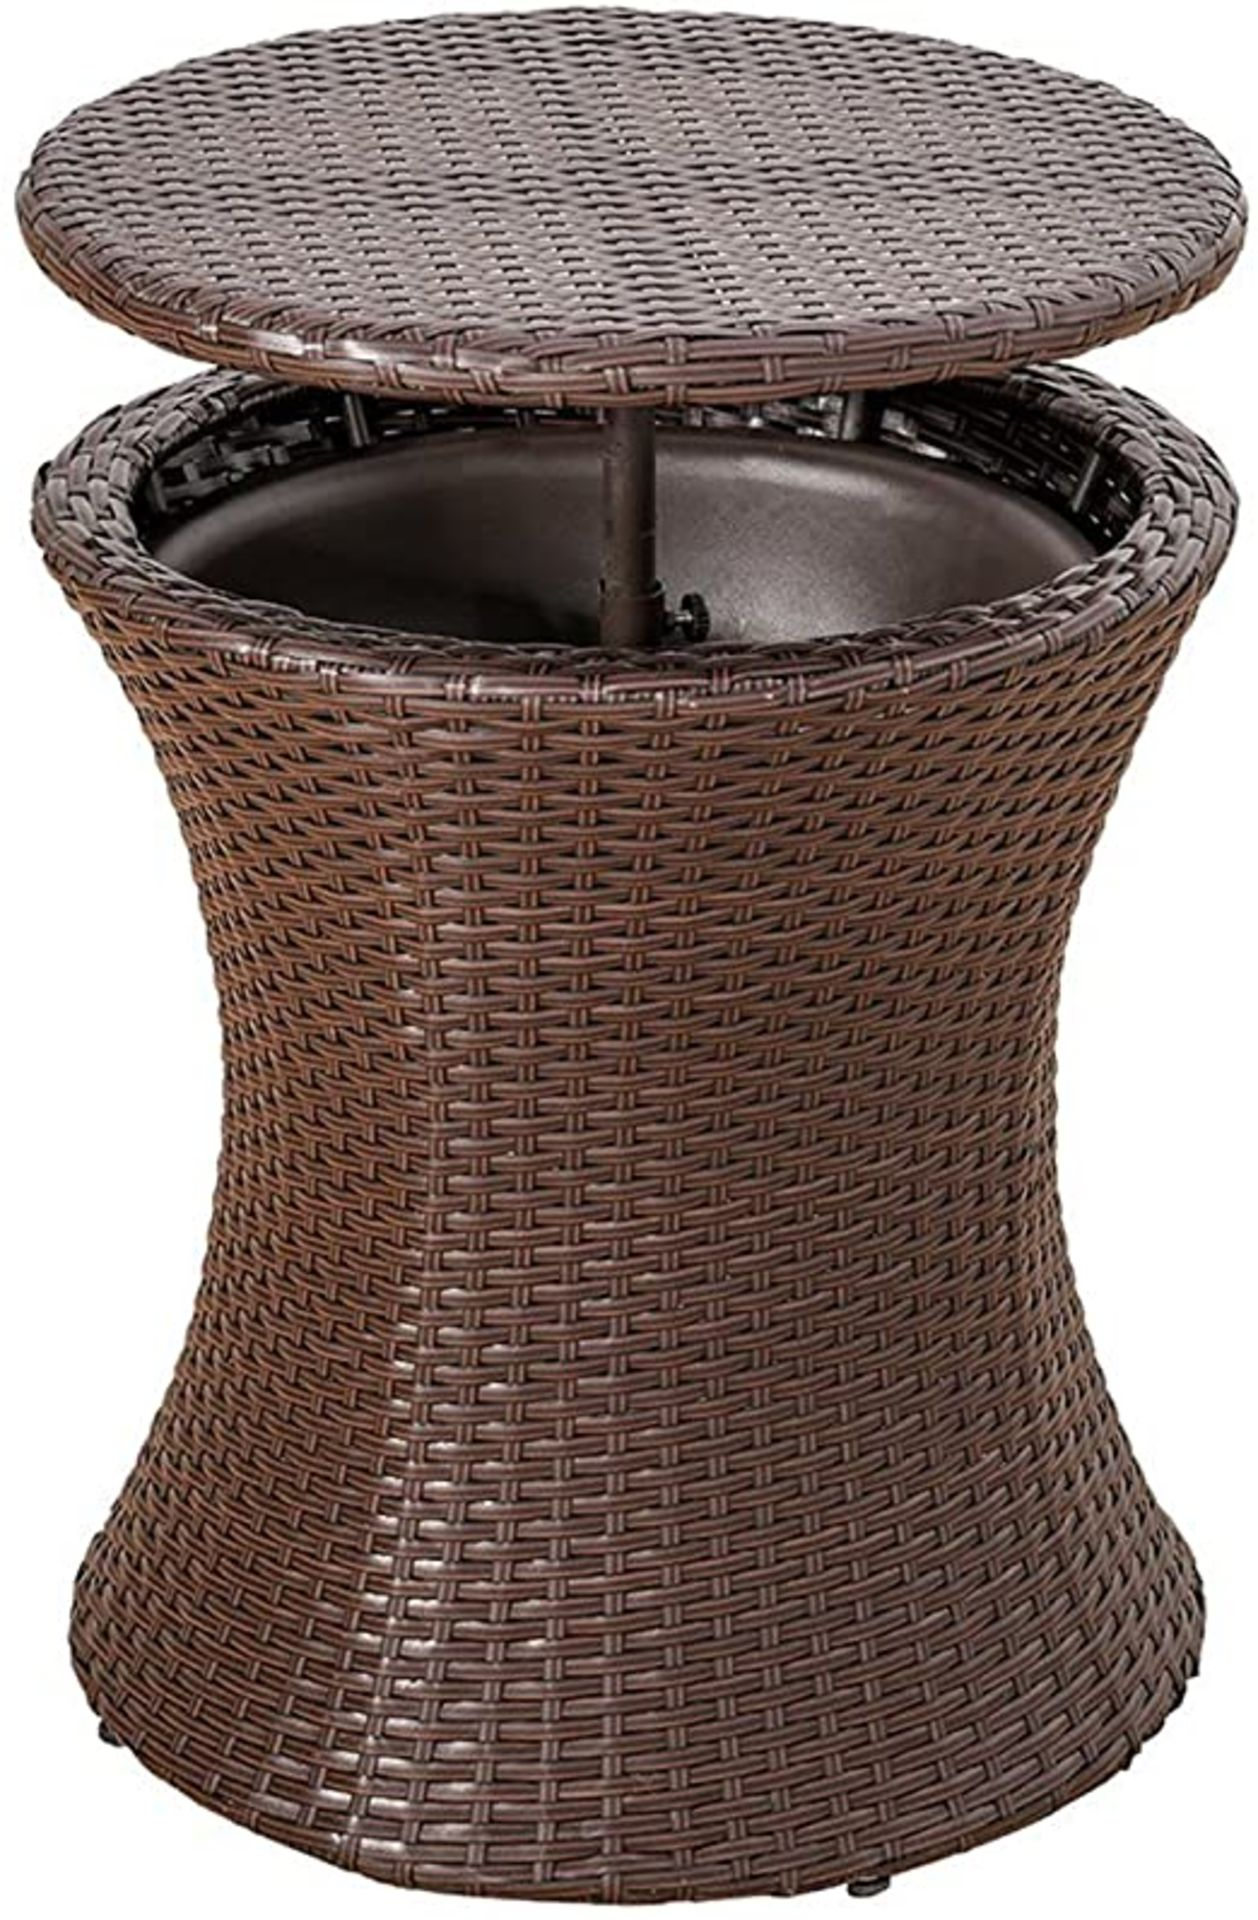 + VAT Brand New Chelsea Garden Company Rattan Bar Table With Metal Ice Cooler - Finished In - Image 2 of 3